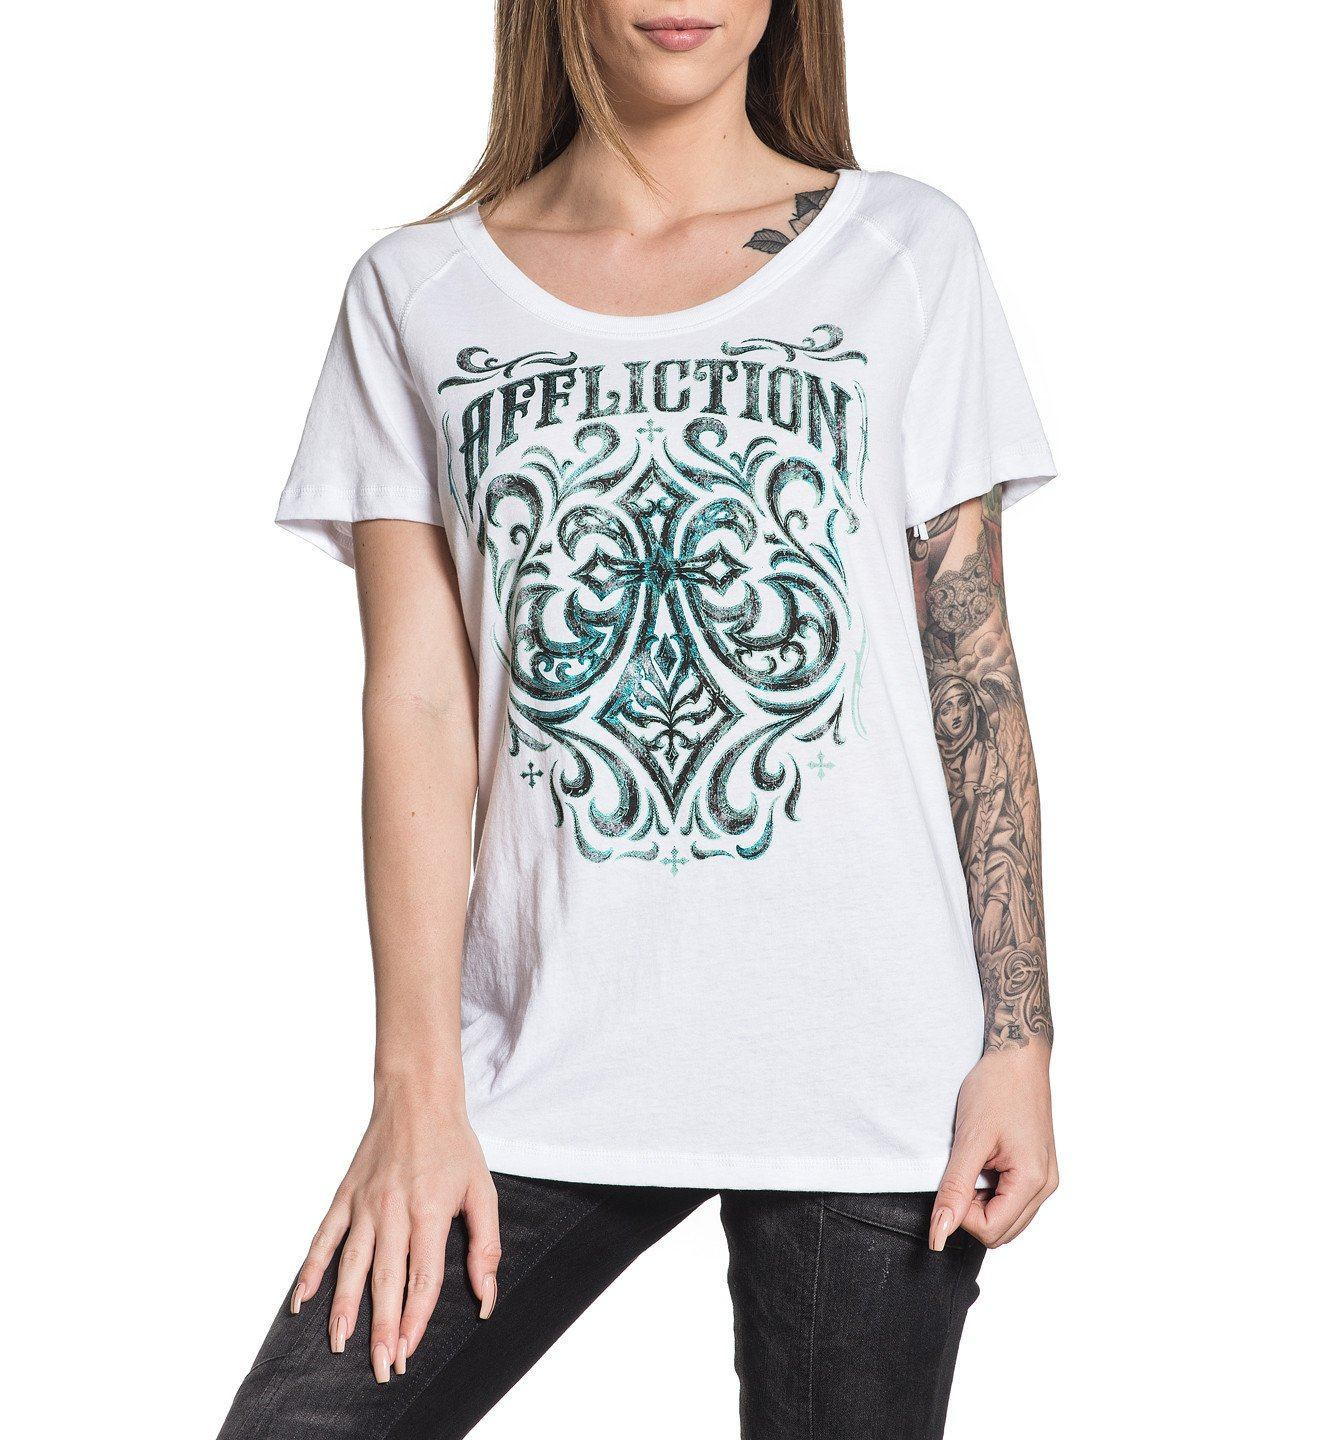 Ironside - Womens Short Sleeve Tees - Affliction Clothing